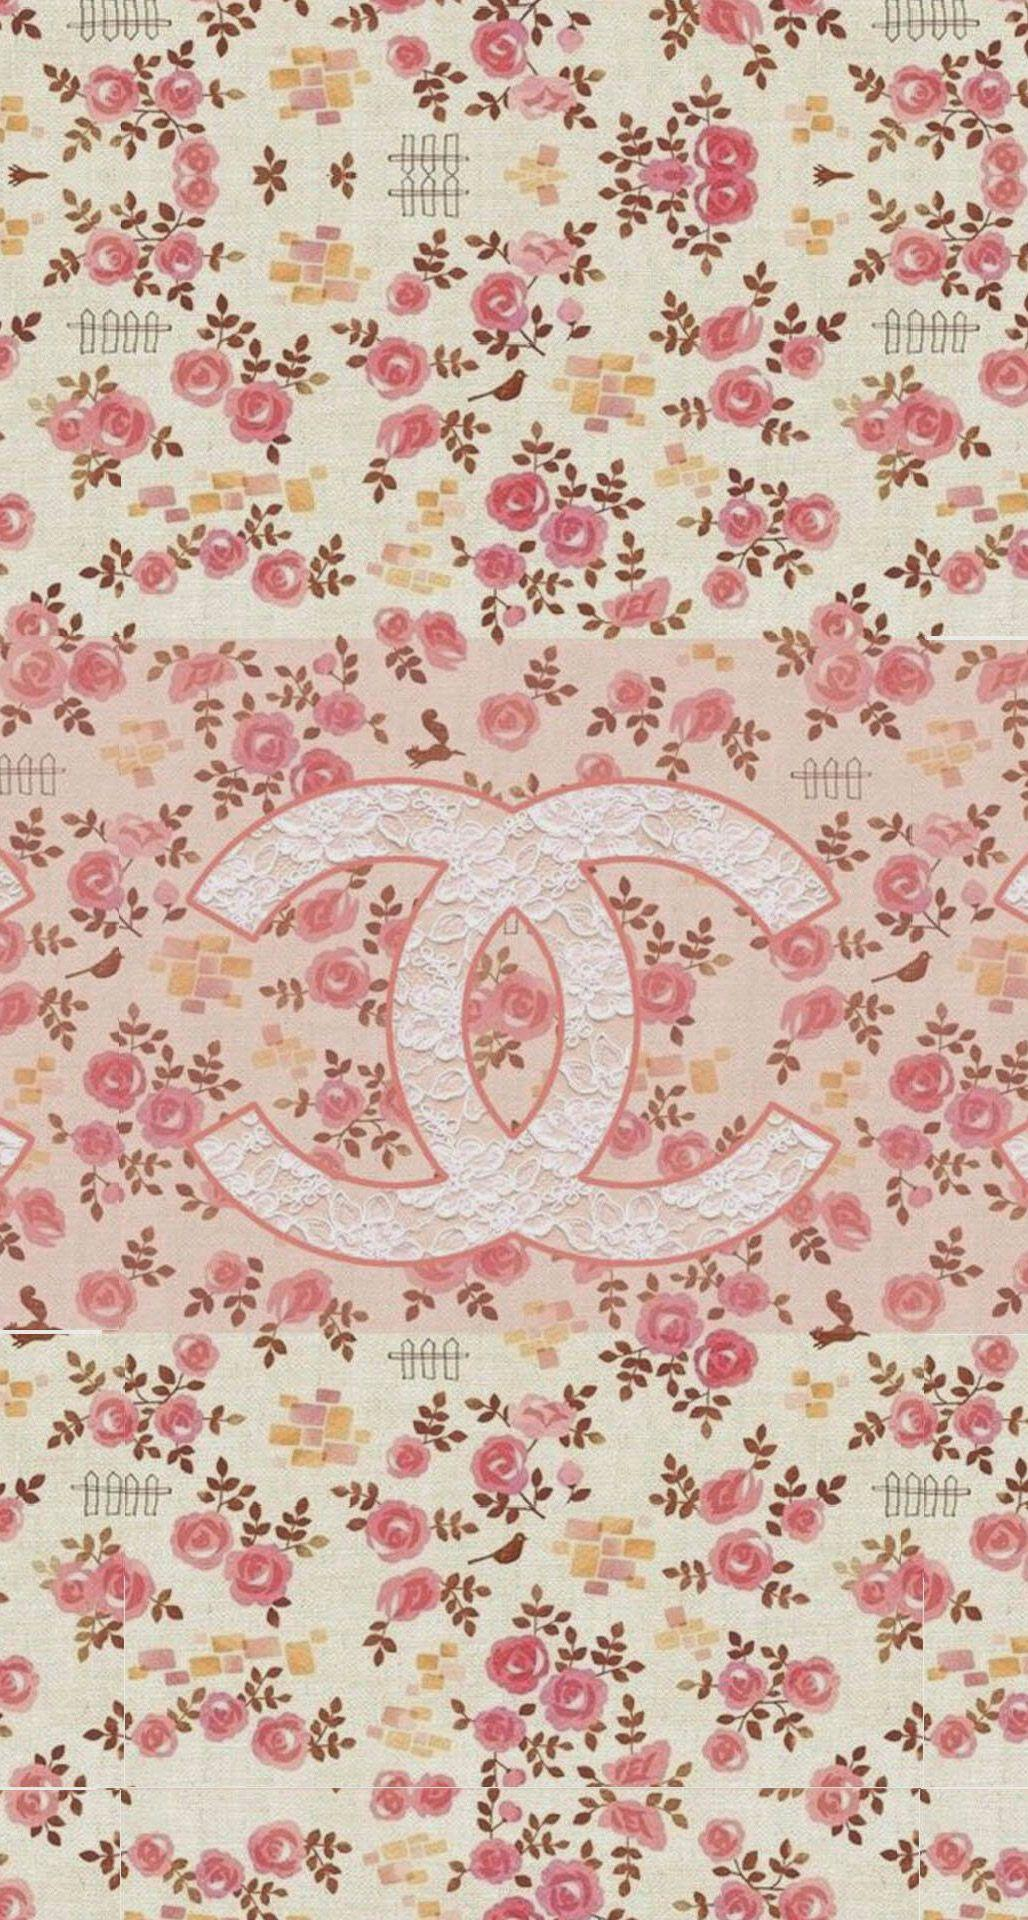 Coco Chanel Flowers Pattern Logo iPhone 6 Plus HD Wallpaper.jpg